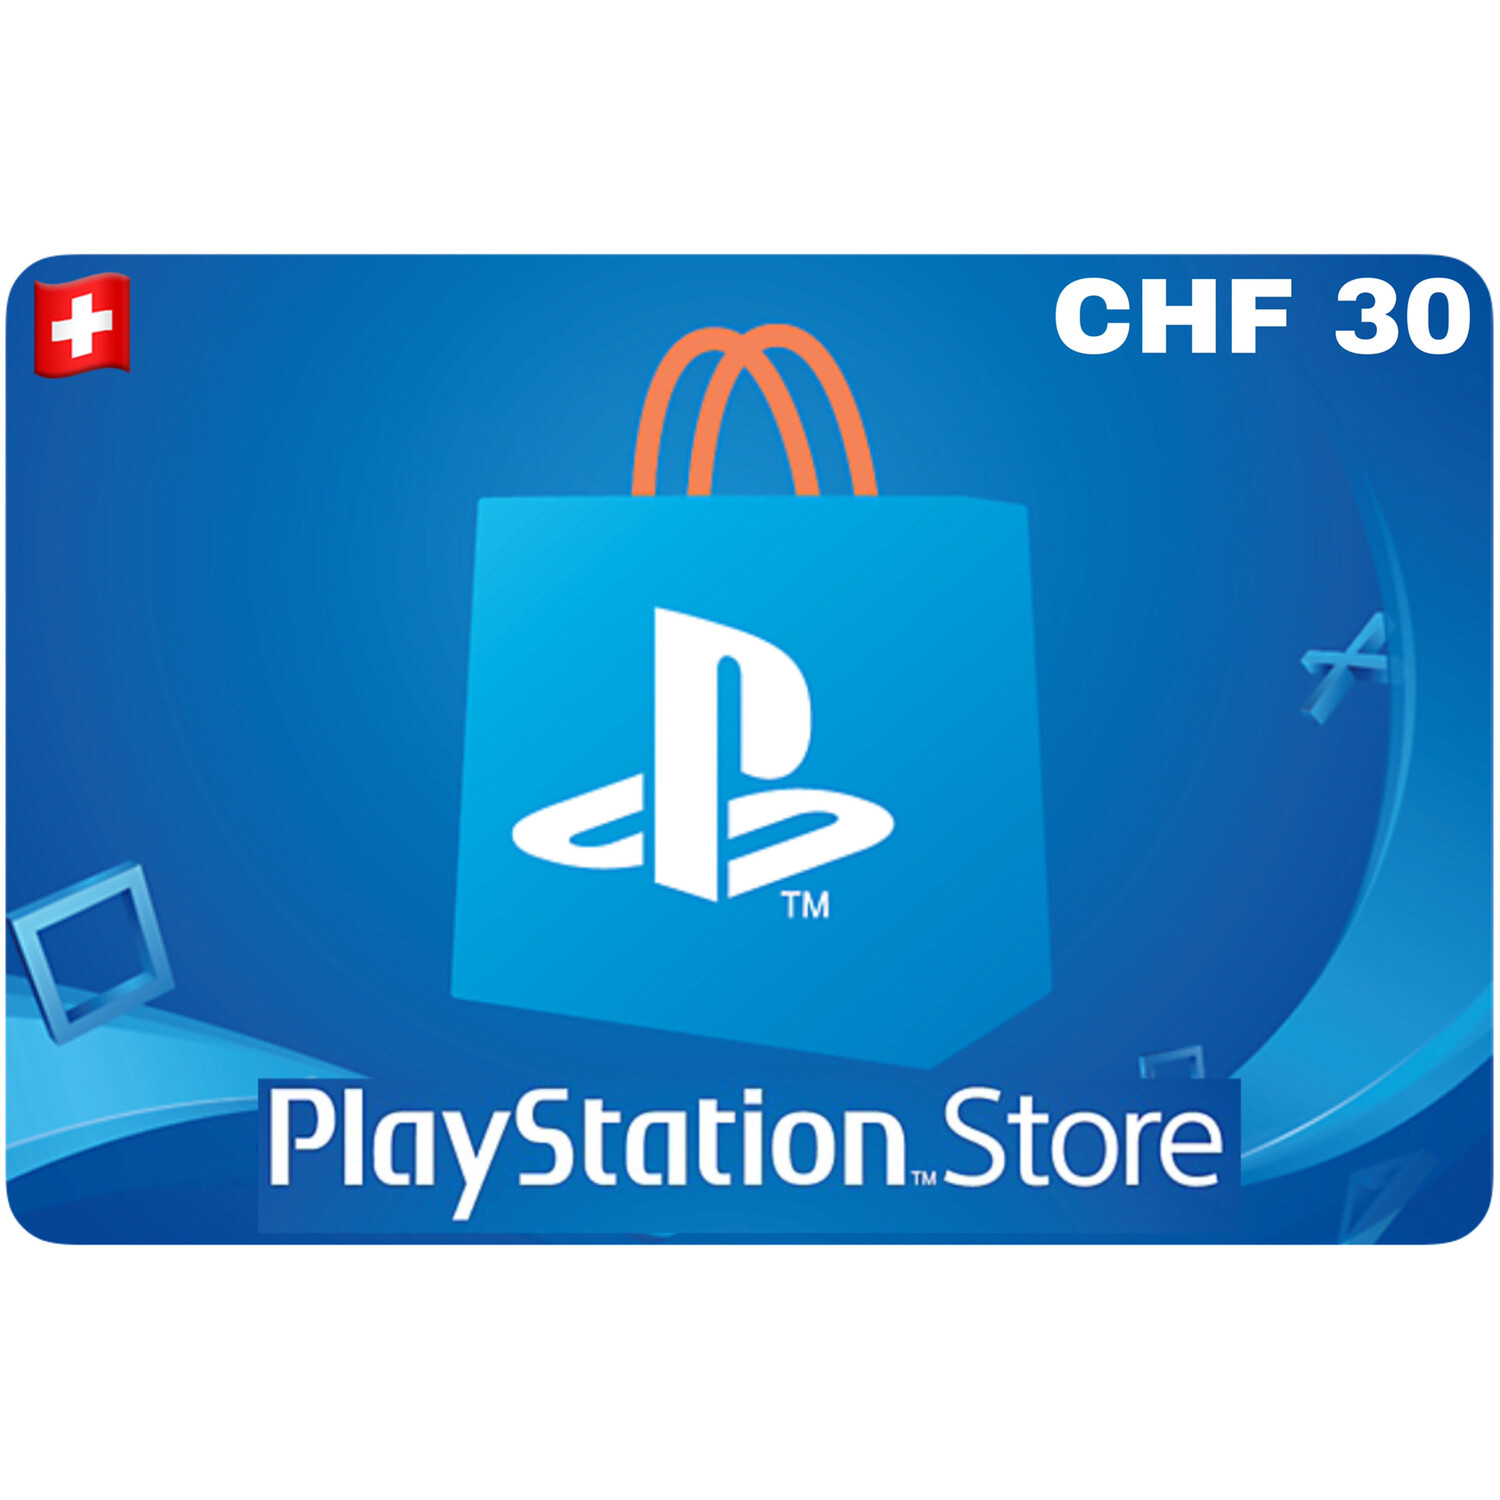 Playstation Store Gift Card Switzerland CHF 30